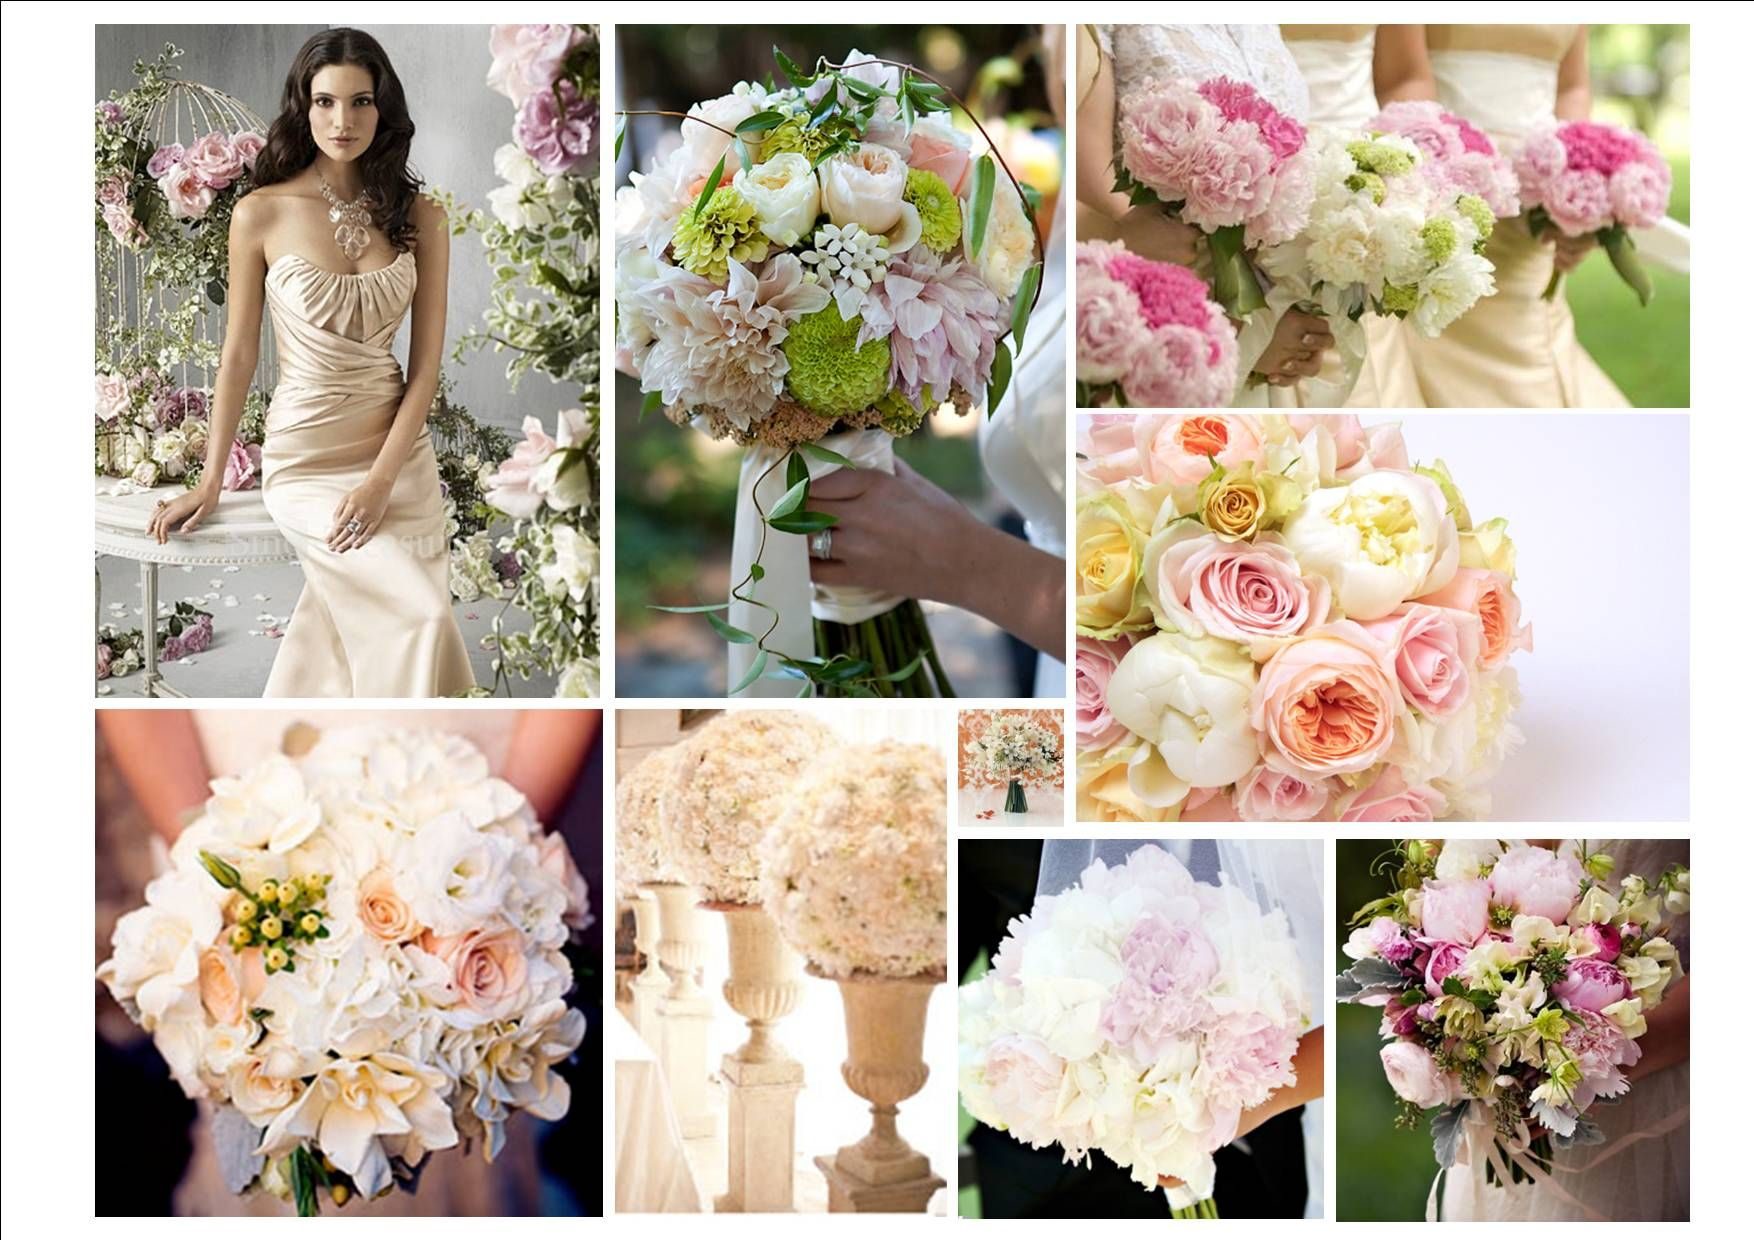 Ivory champagne and blush weddings pink green peach or ivory ivory champagne and blush weddings pink green peach or ivory flowers will enhance izmirmasajfo Choice Image